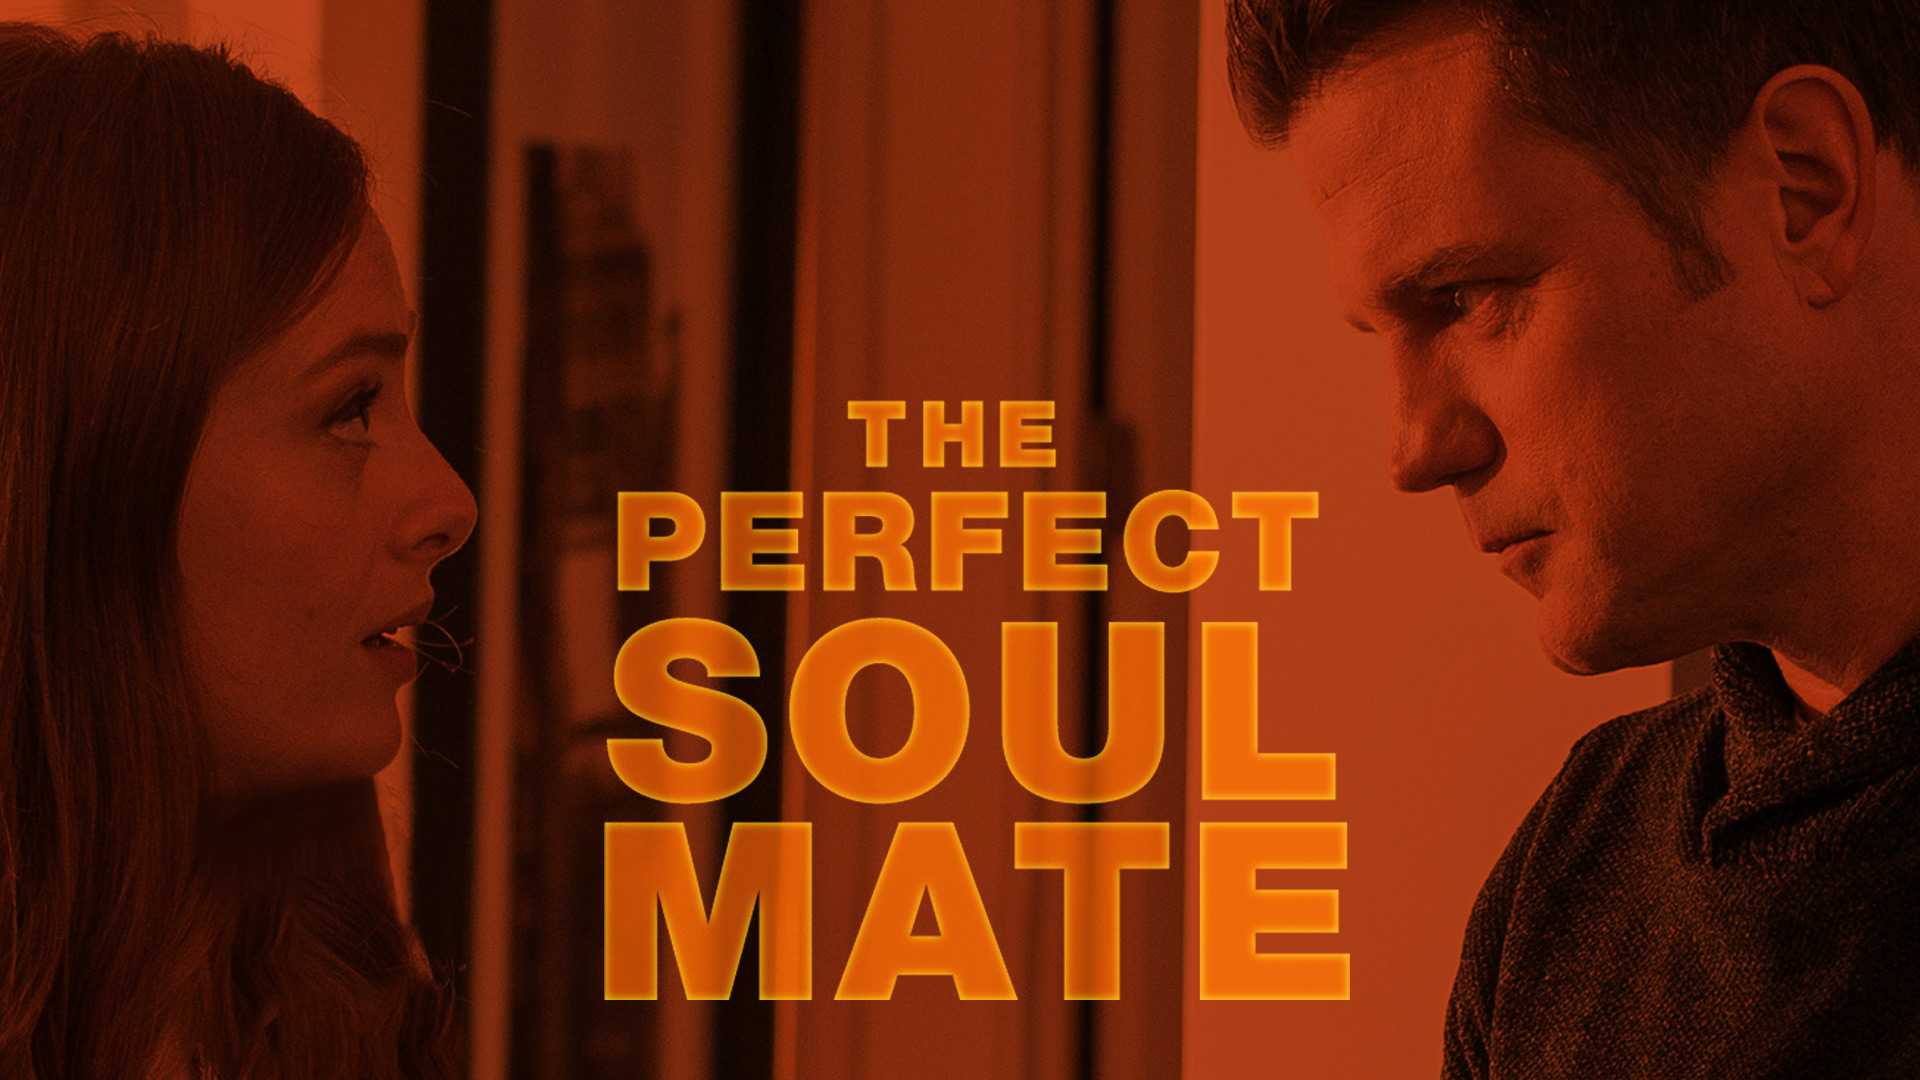 THE PERFECT SOULMATE